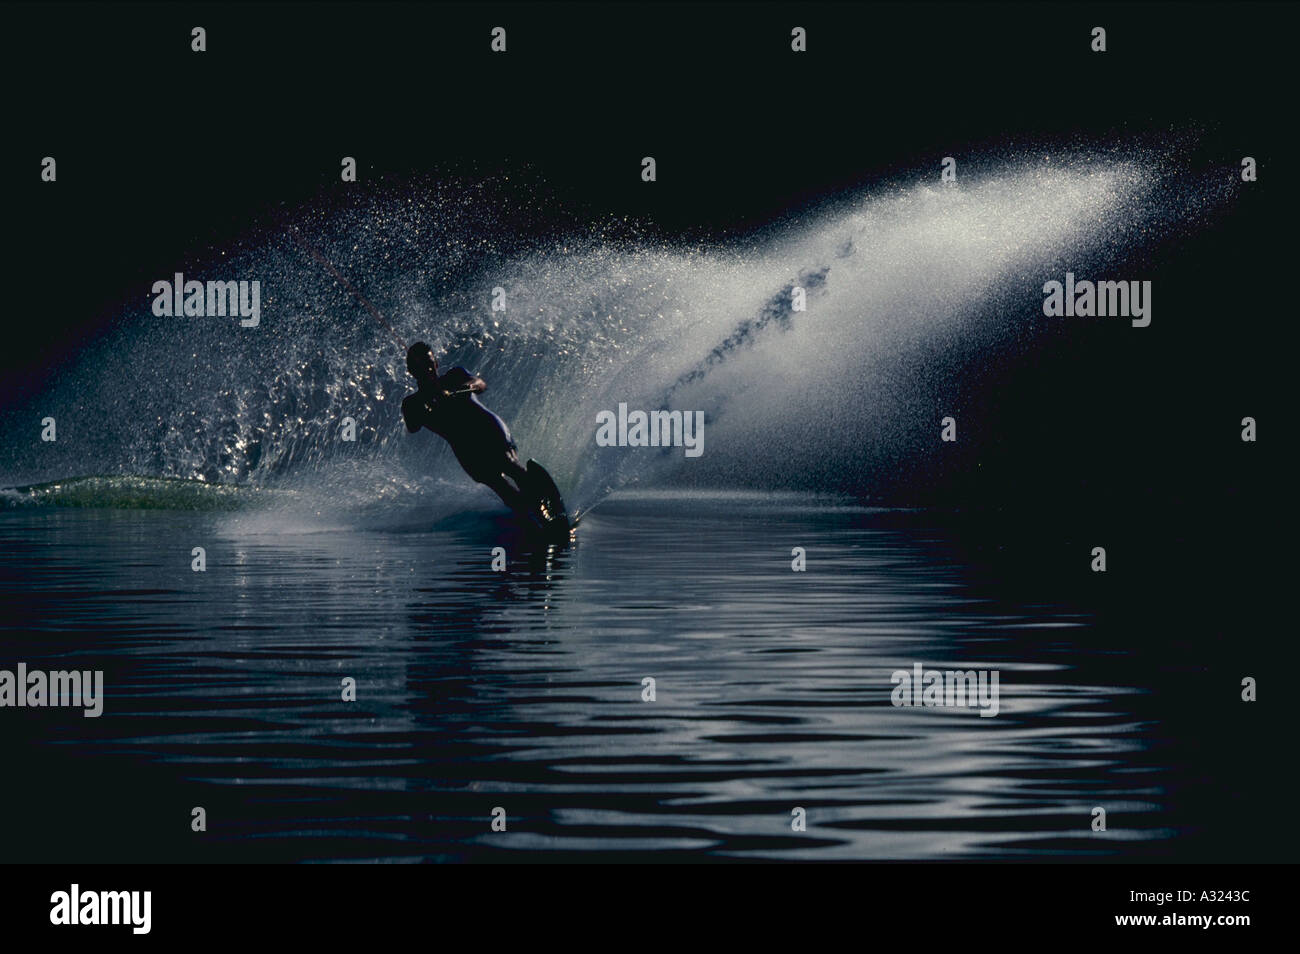 Man water skiing in morning light with spray of water - Stock Image